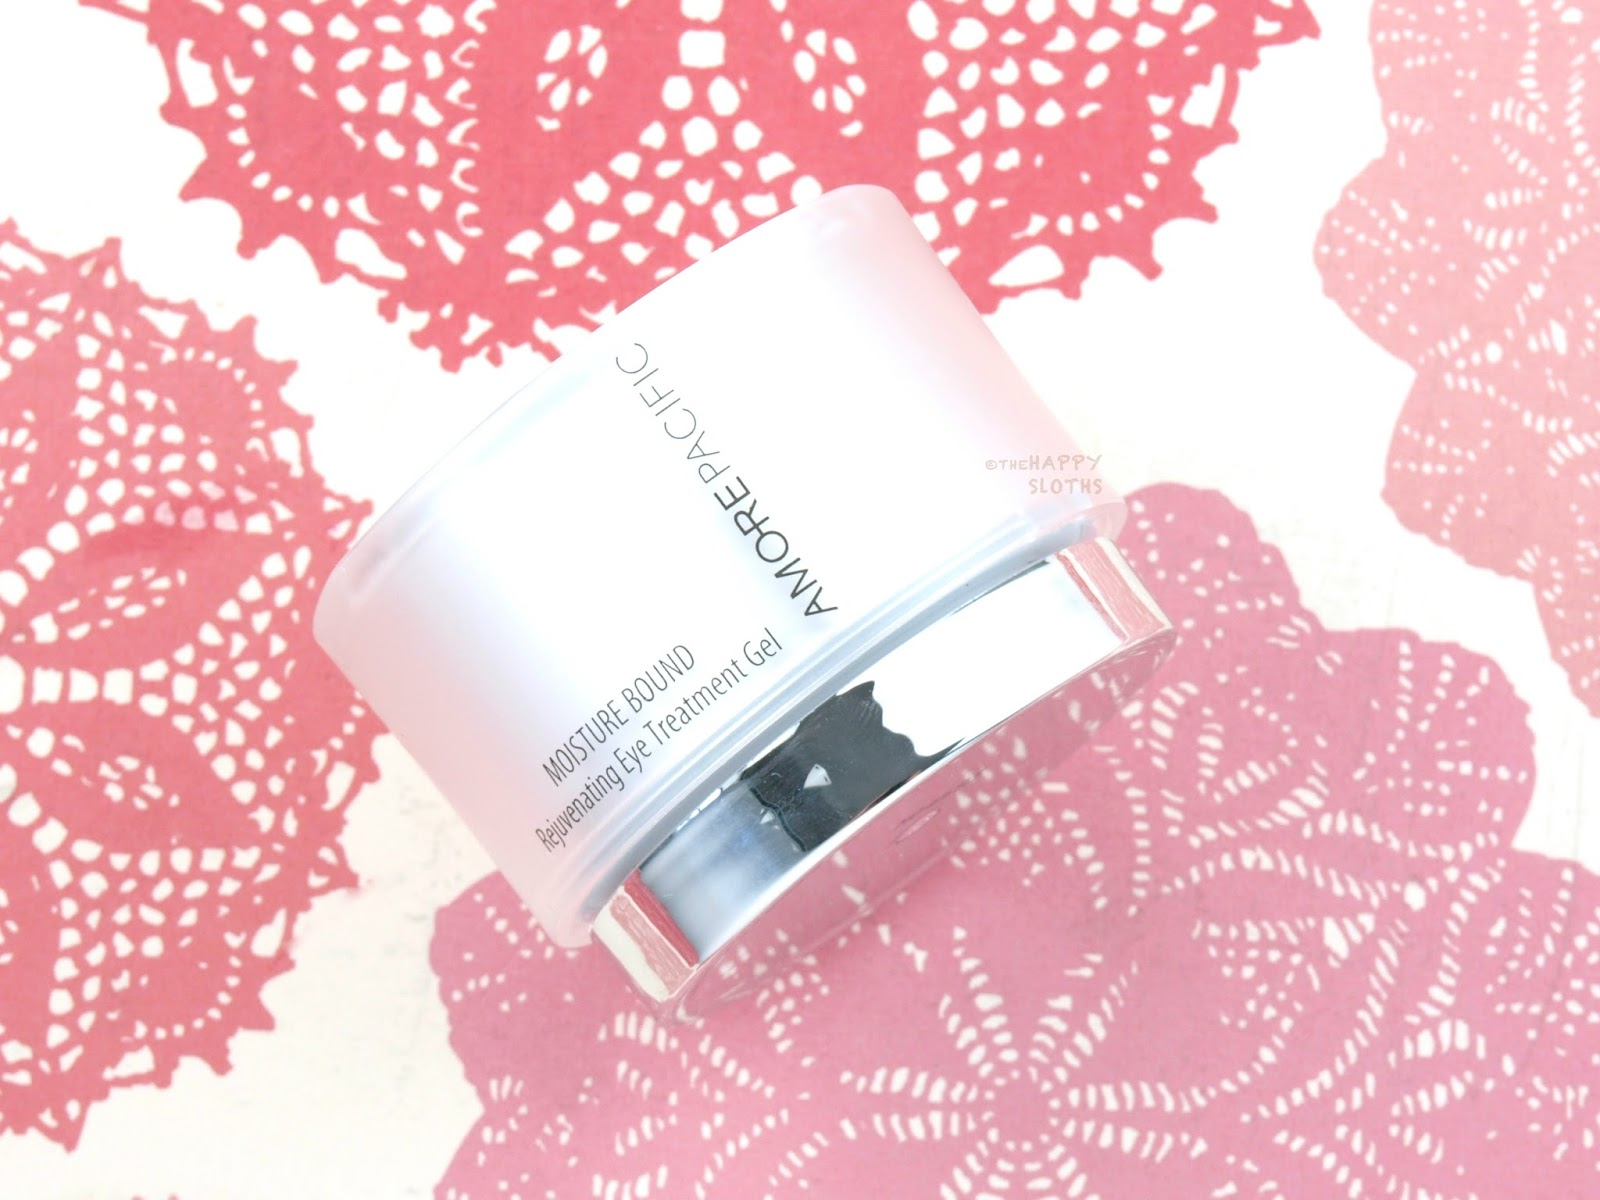 Face Lotus Review Skin Oily Cream